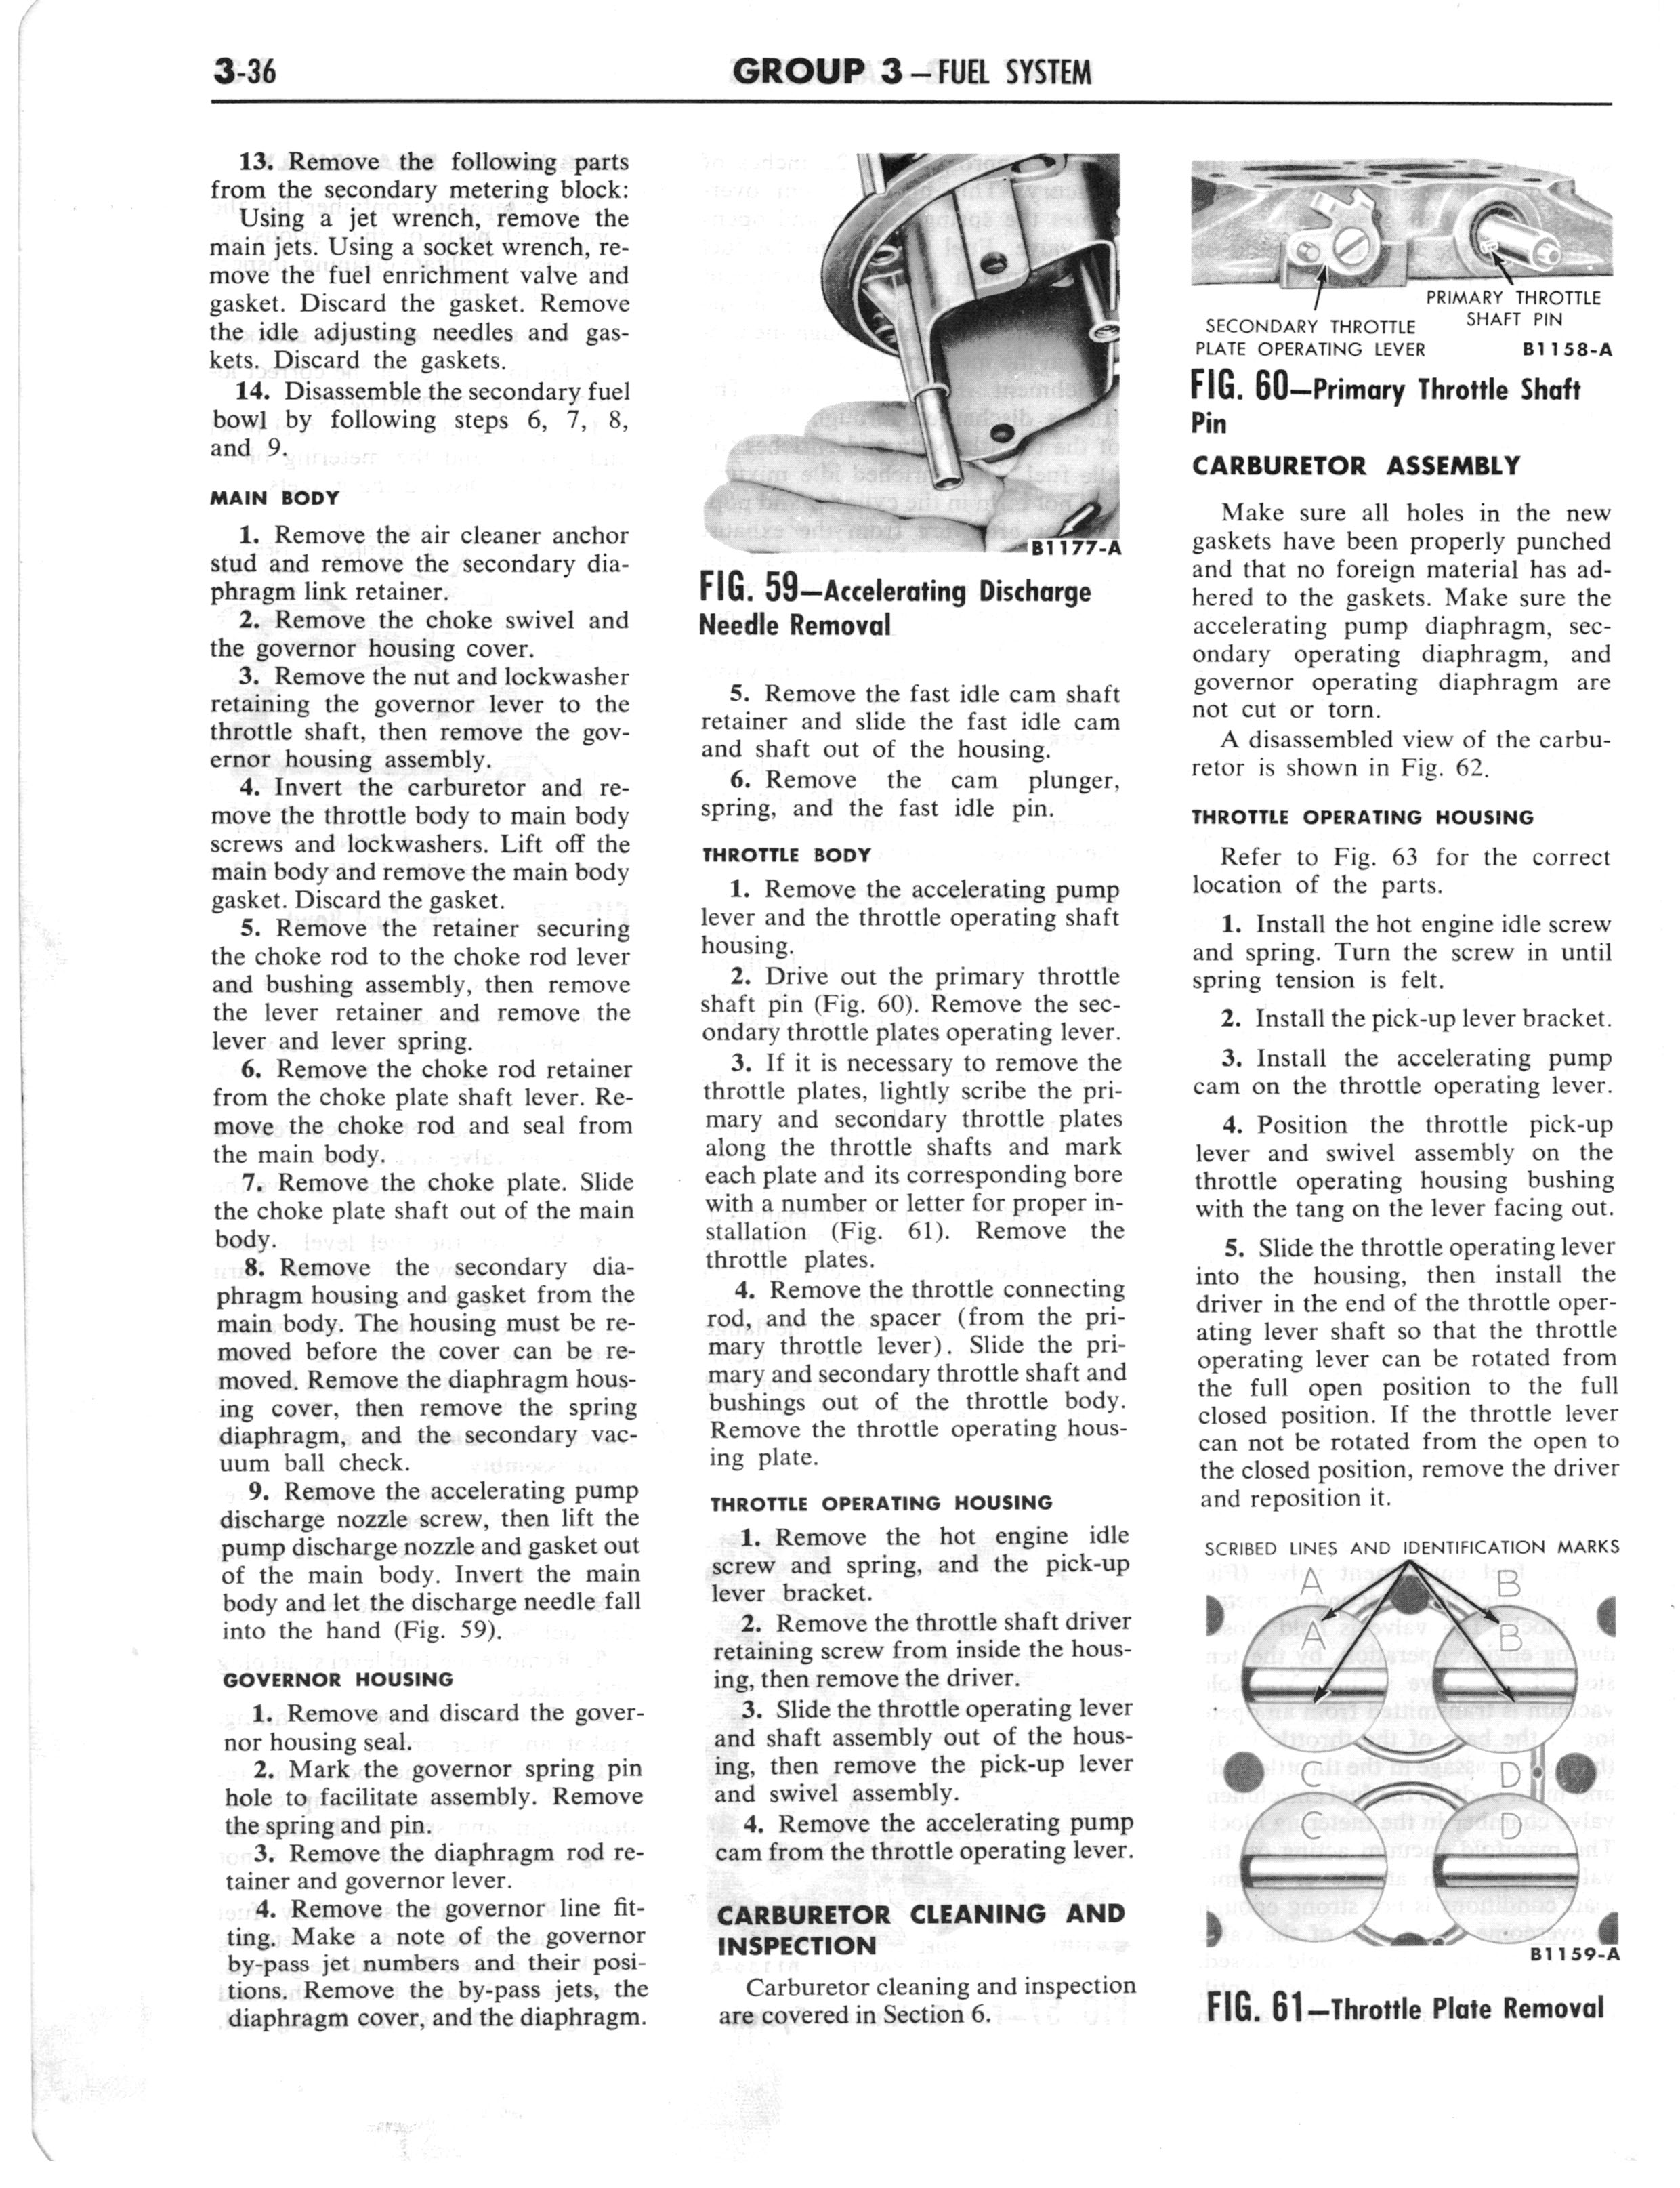 1960 Ford and Mercury Truck Shop Manual page 175 of 641